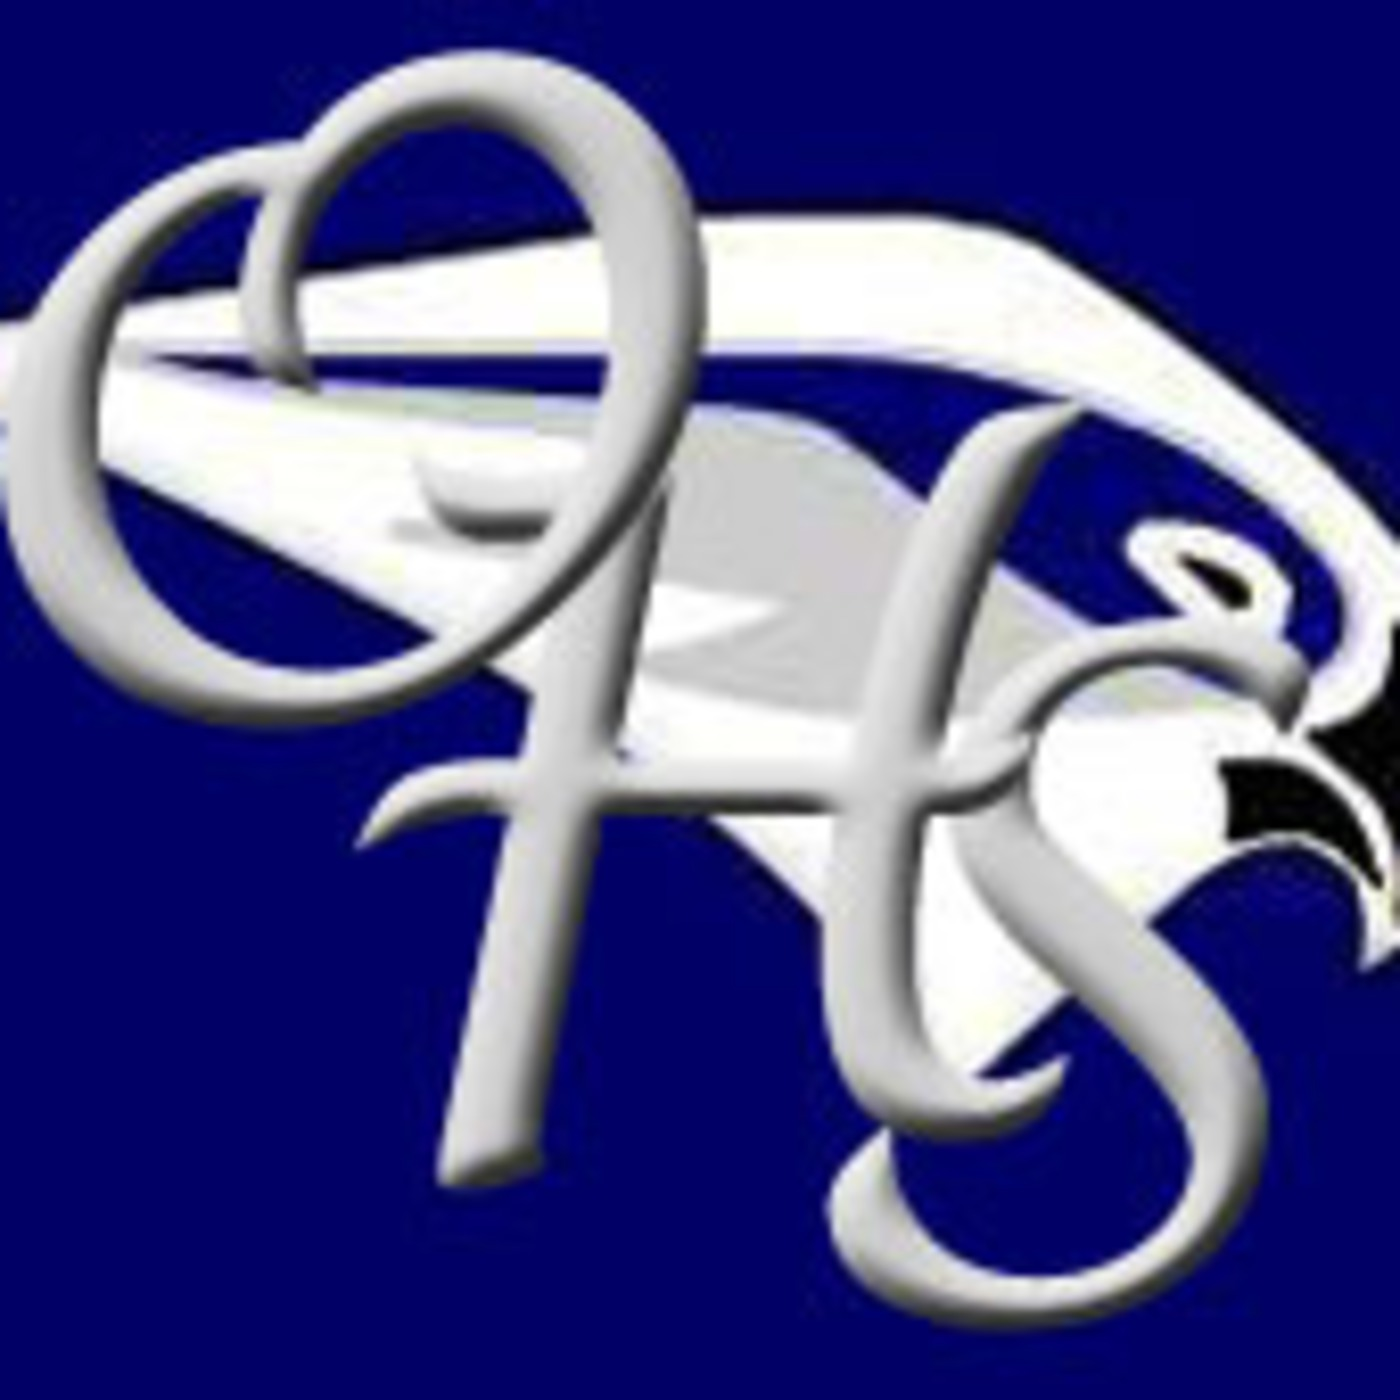 OAKCREST HIGH SCHOOL FALCON TV AND MEDIA PODCASTS